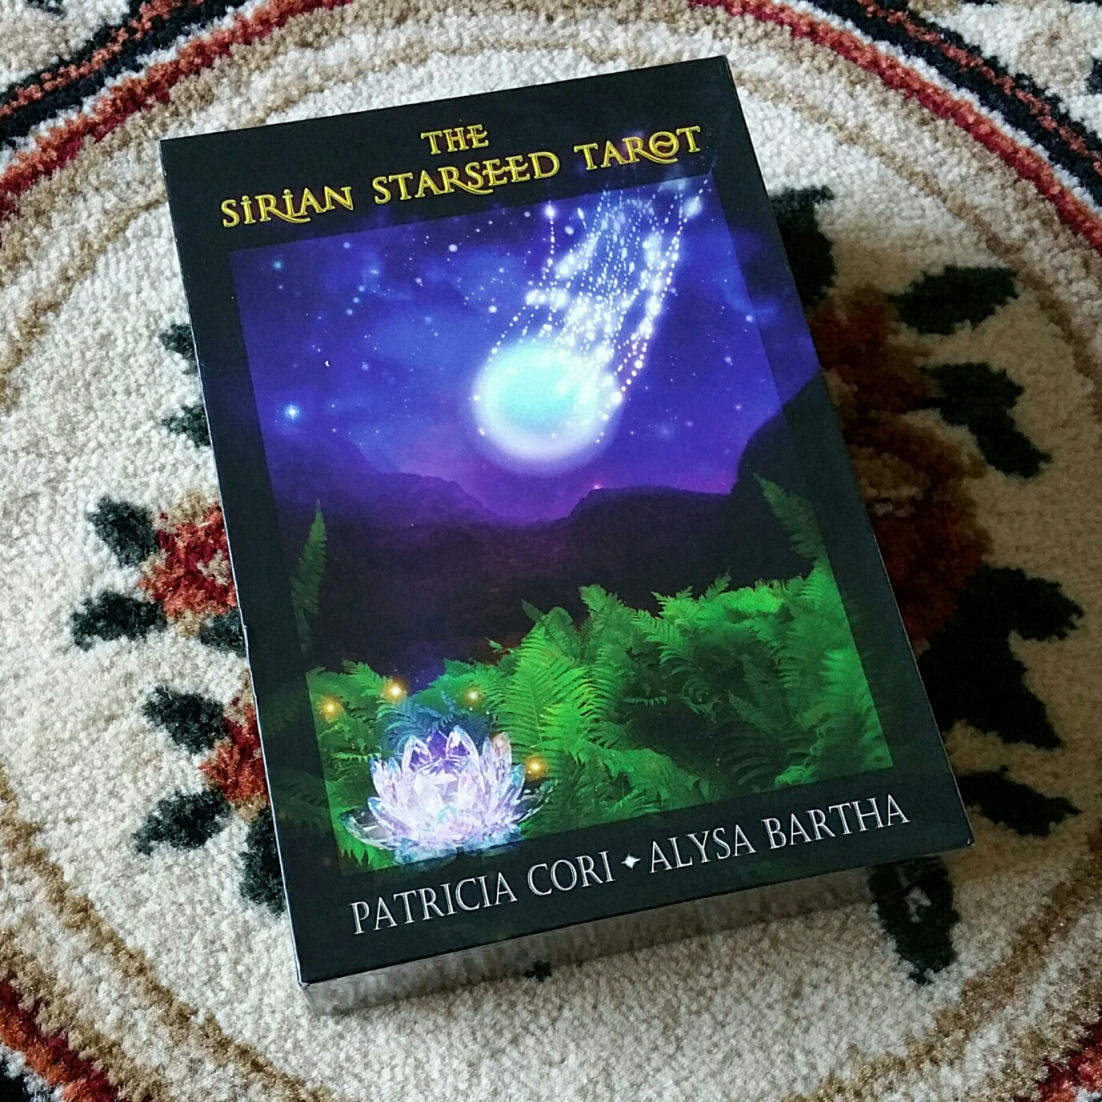 Sirian Starseed Tarot by Patricia Cori and Alysa Bartha